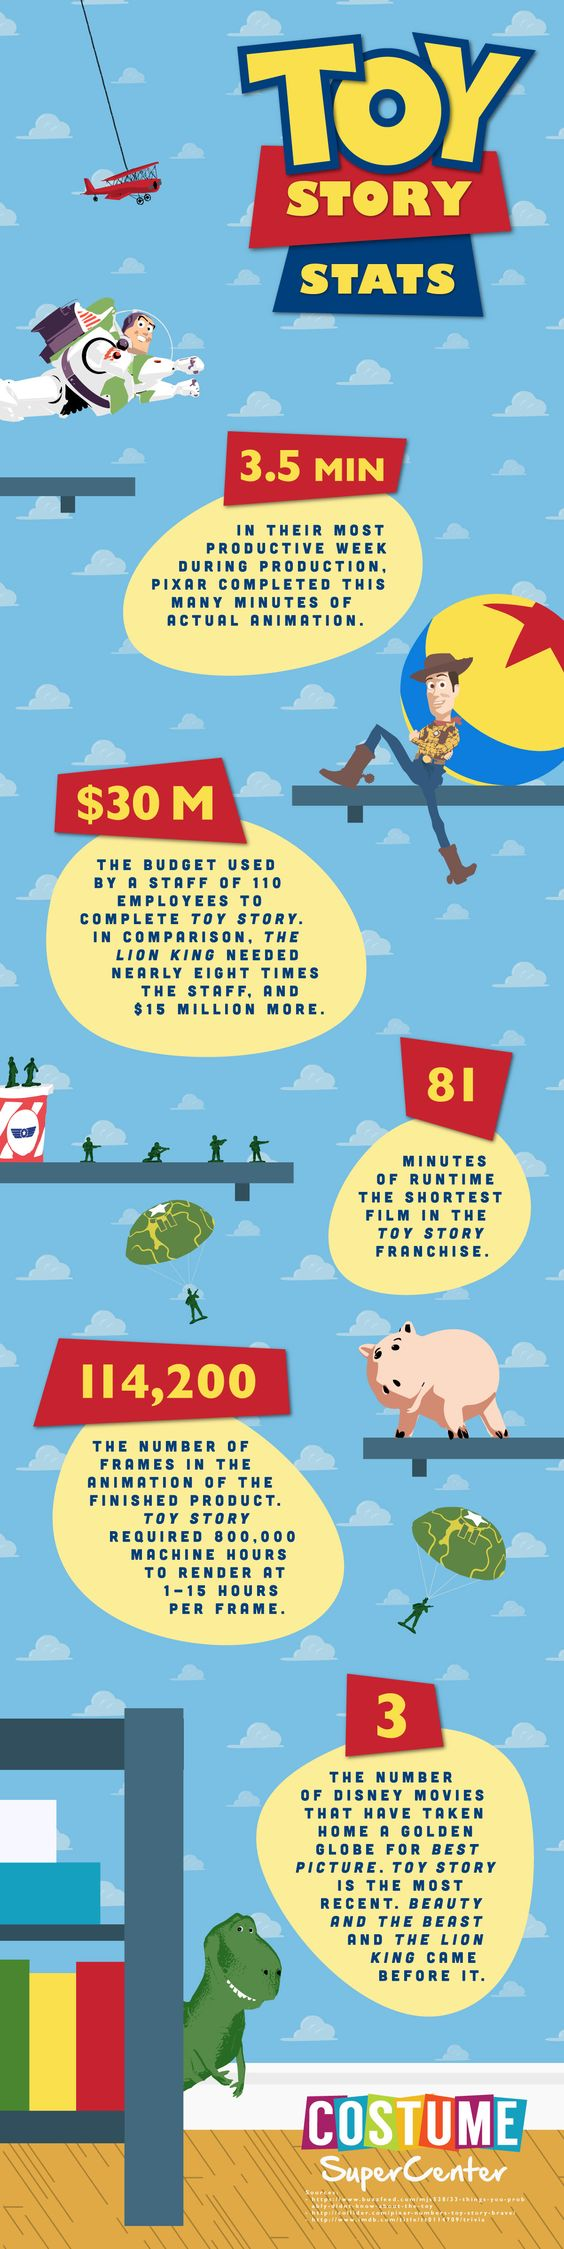 Sid's Toys from Toy Story: Names, Trivia, and More Infographic